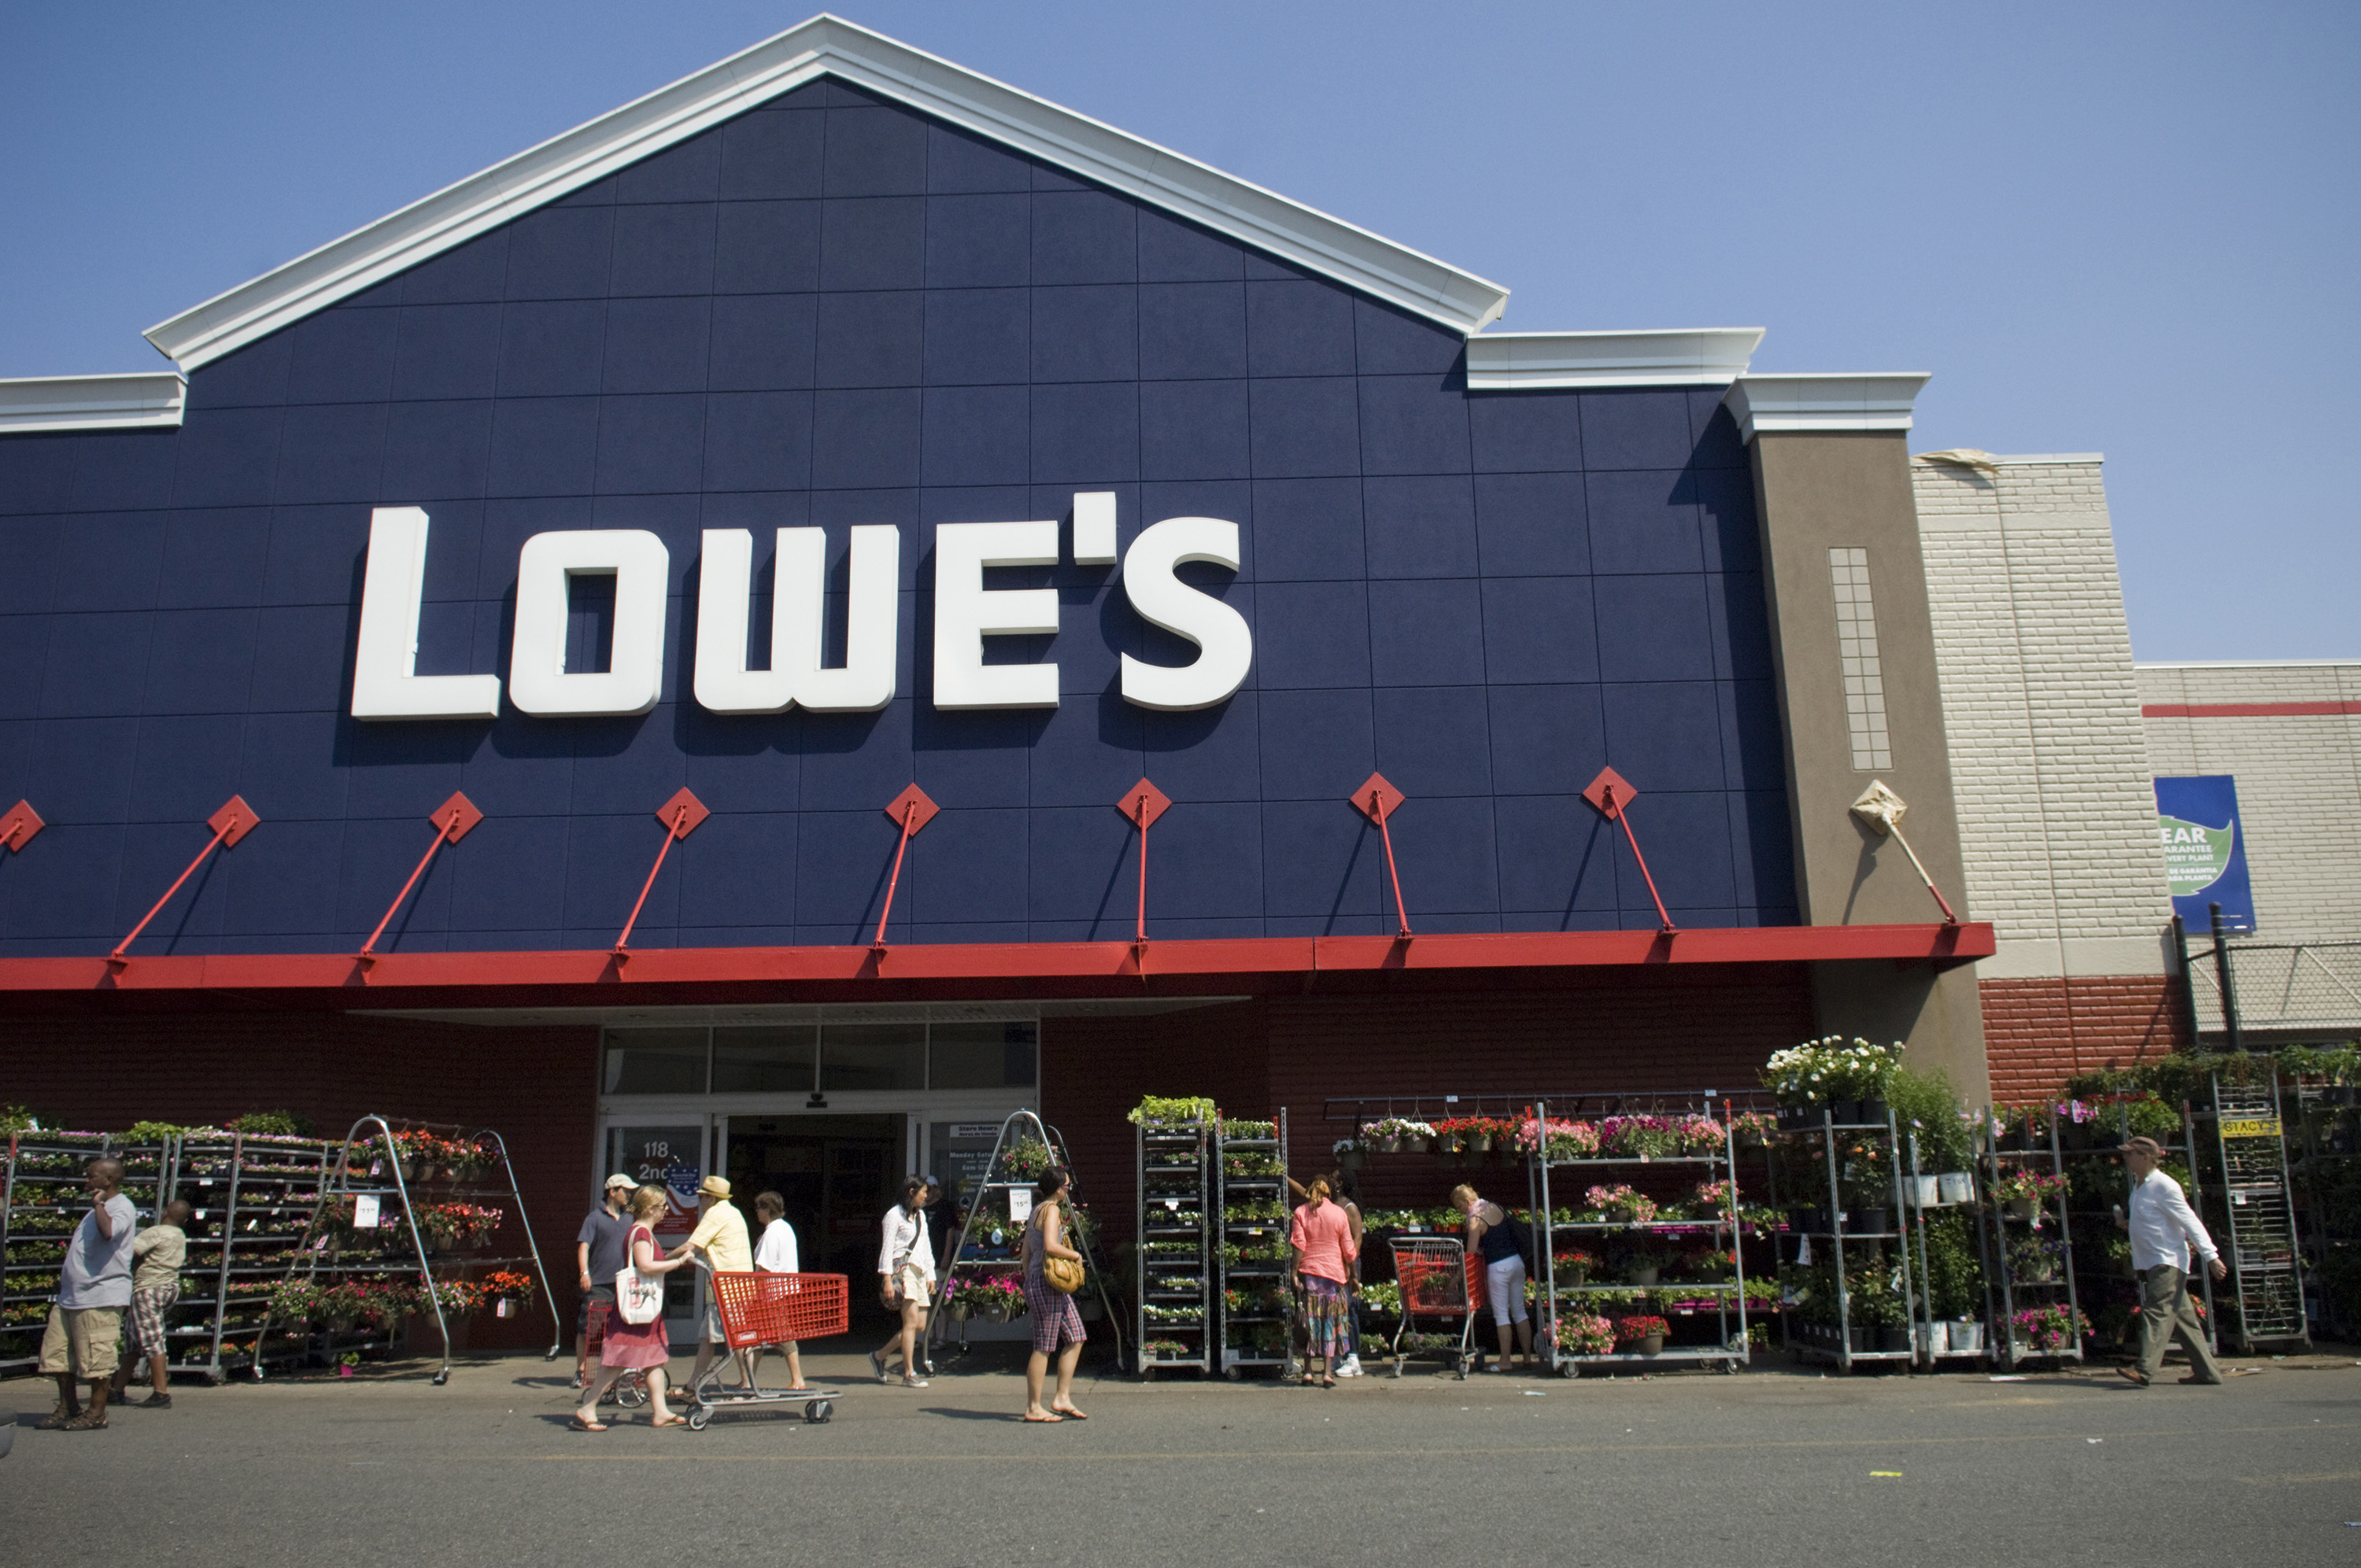 Lowe S Ceo Marvin Ellison Picks Former Executive In His Bid To Challenge Home Depot Retail Dallas News